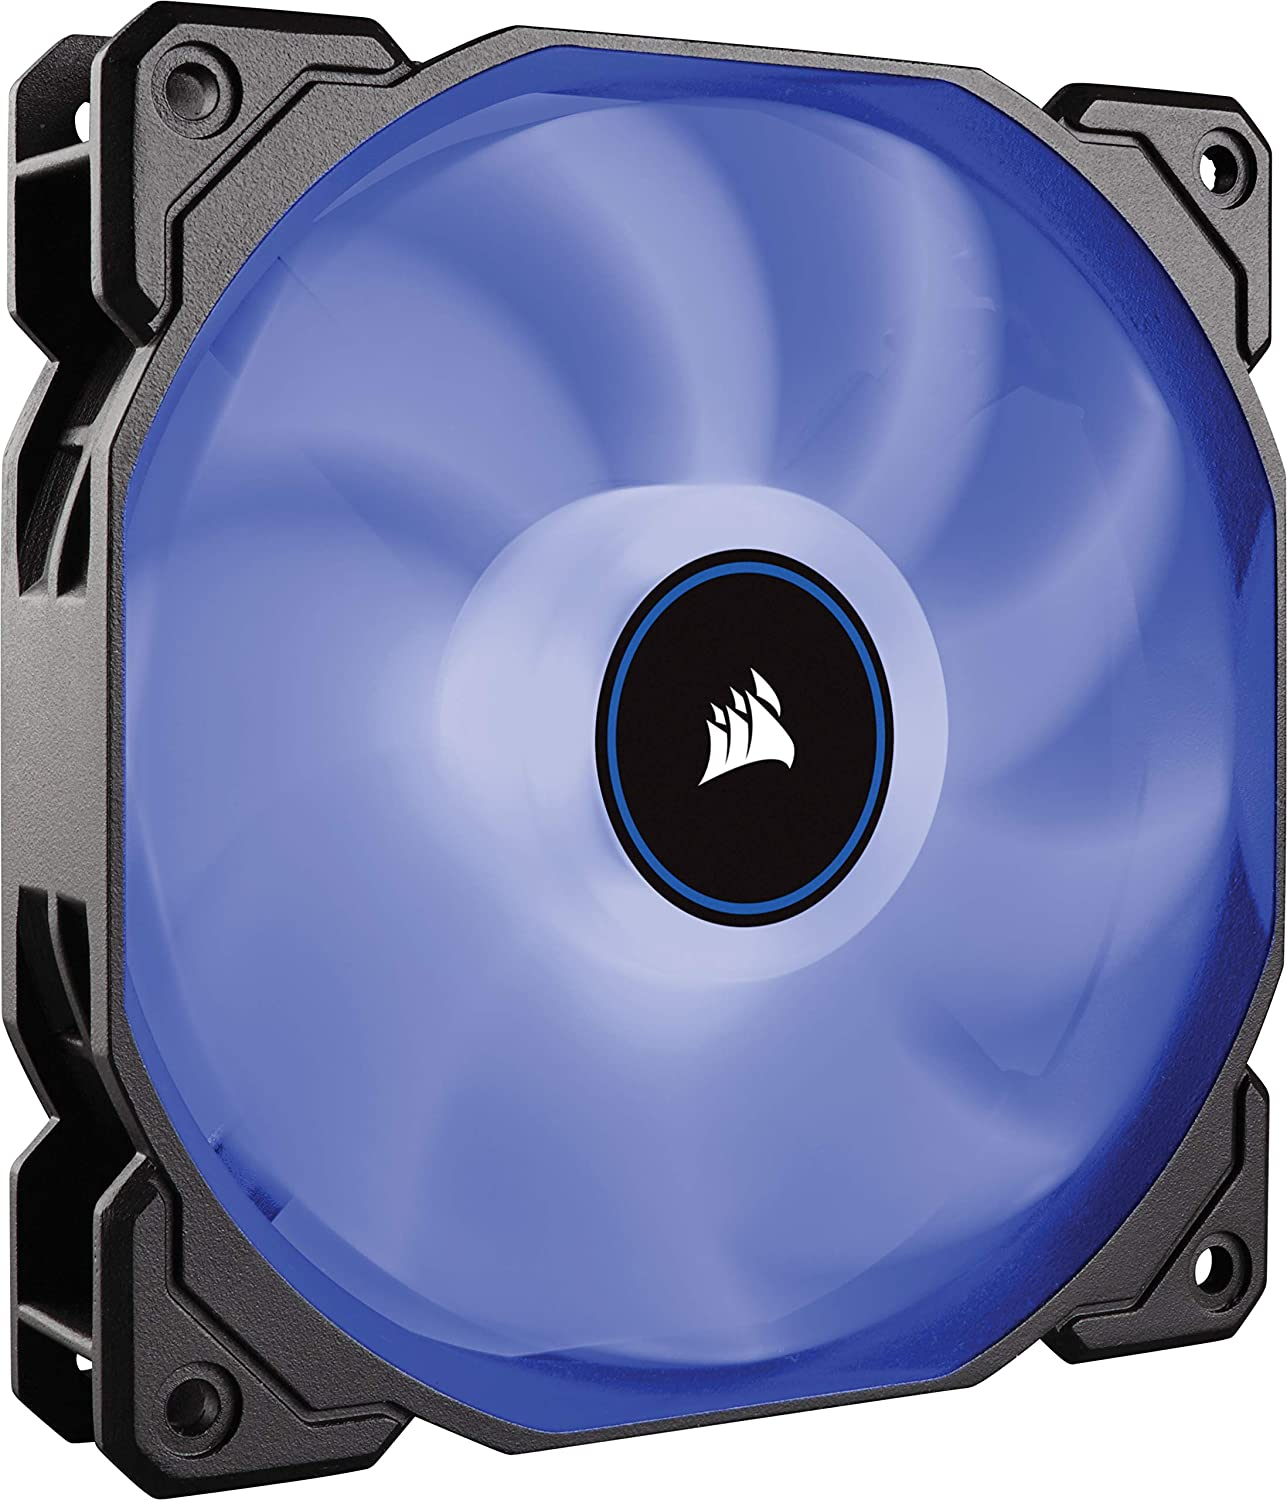 CORSAIR AF140 LED Low Noise Cooling Fan, Single Pack - Blue 140 mm